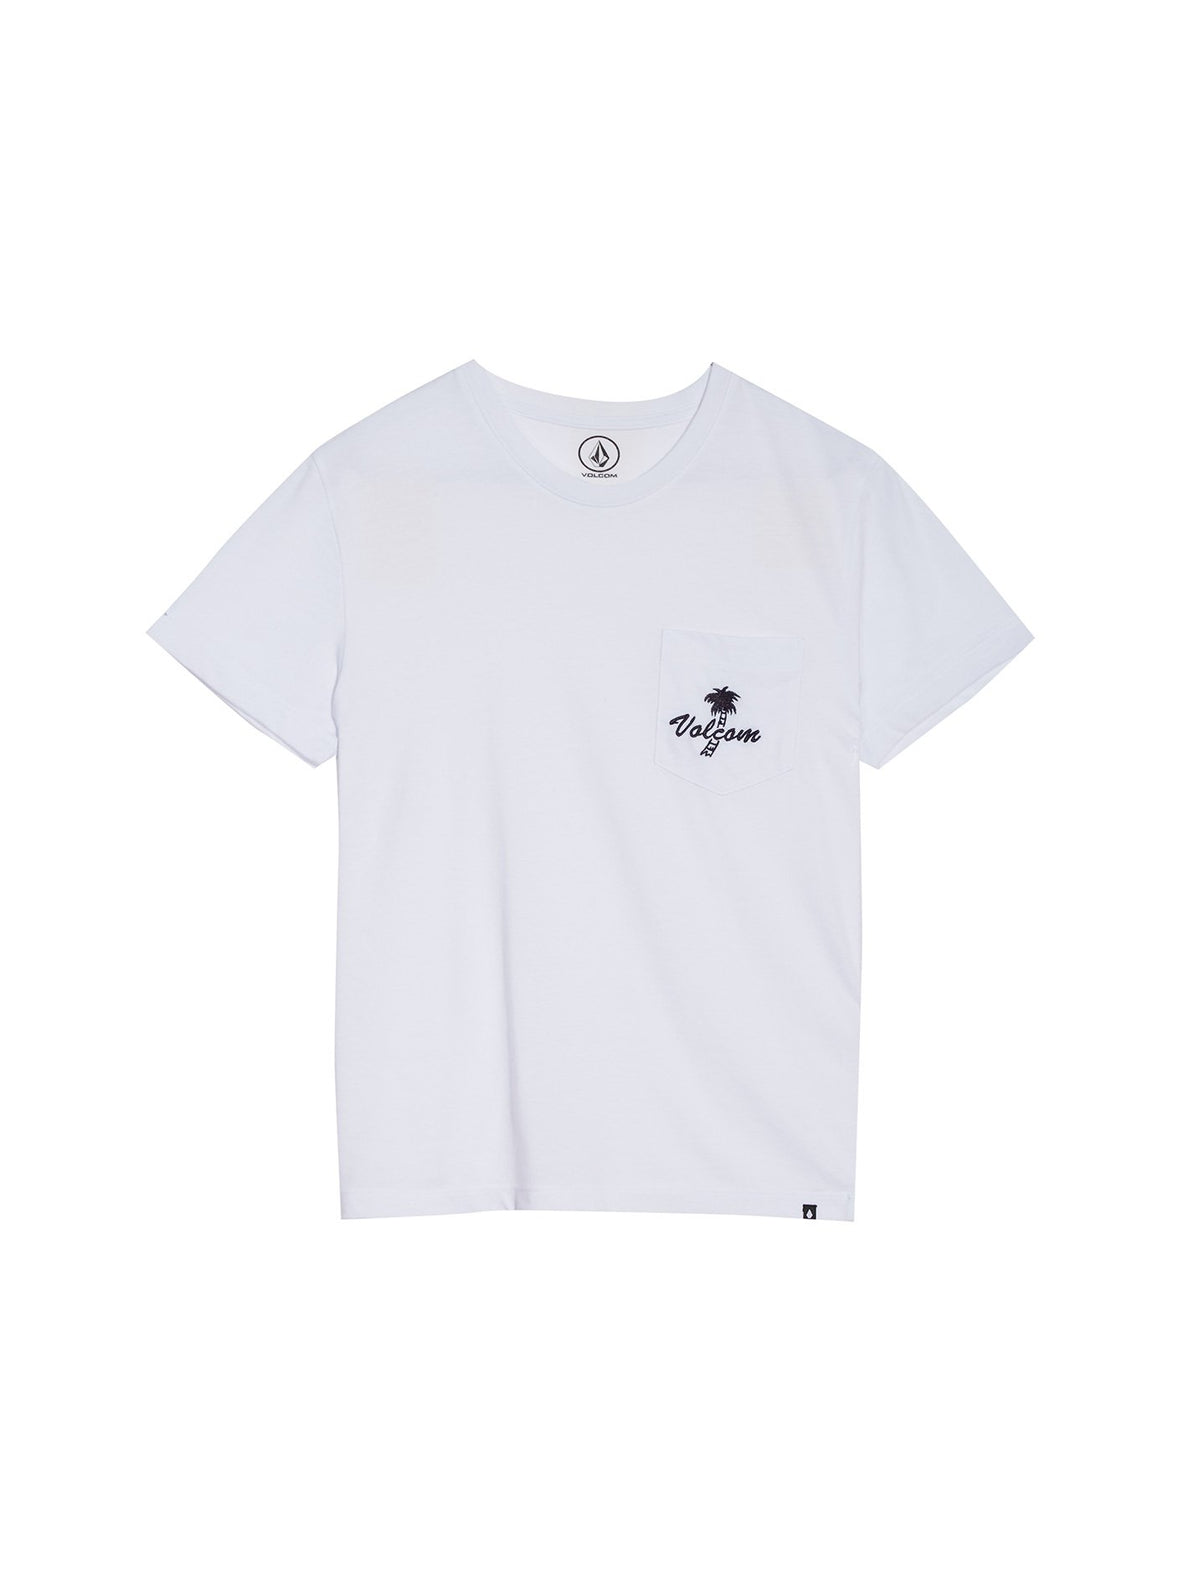 Last Resort Pocket Tee - White (Niňo)